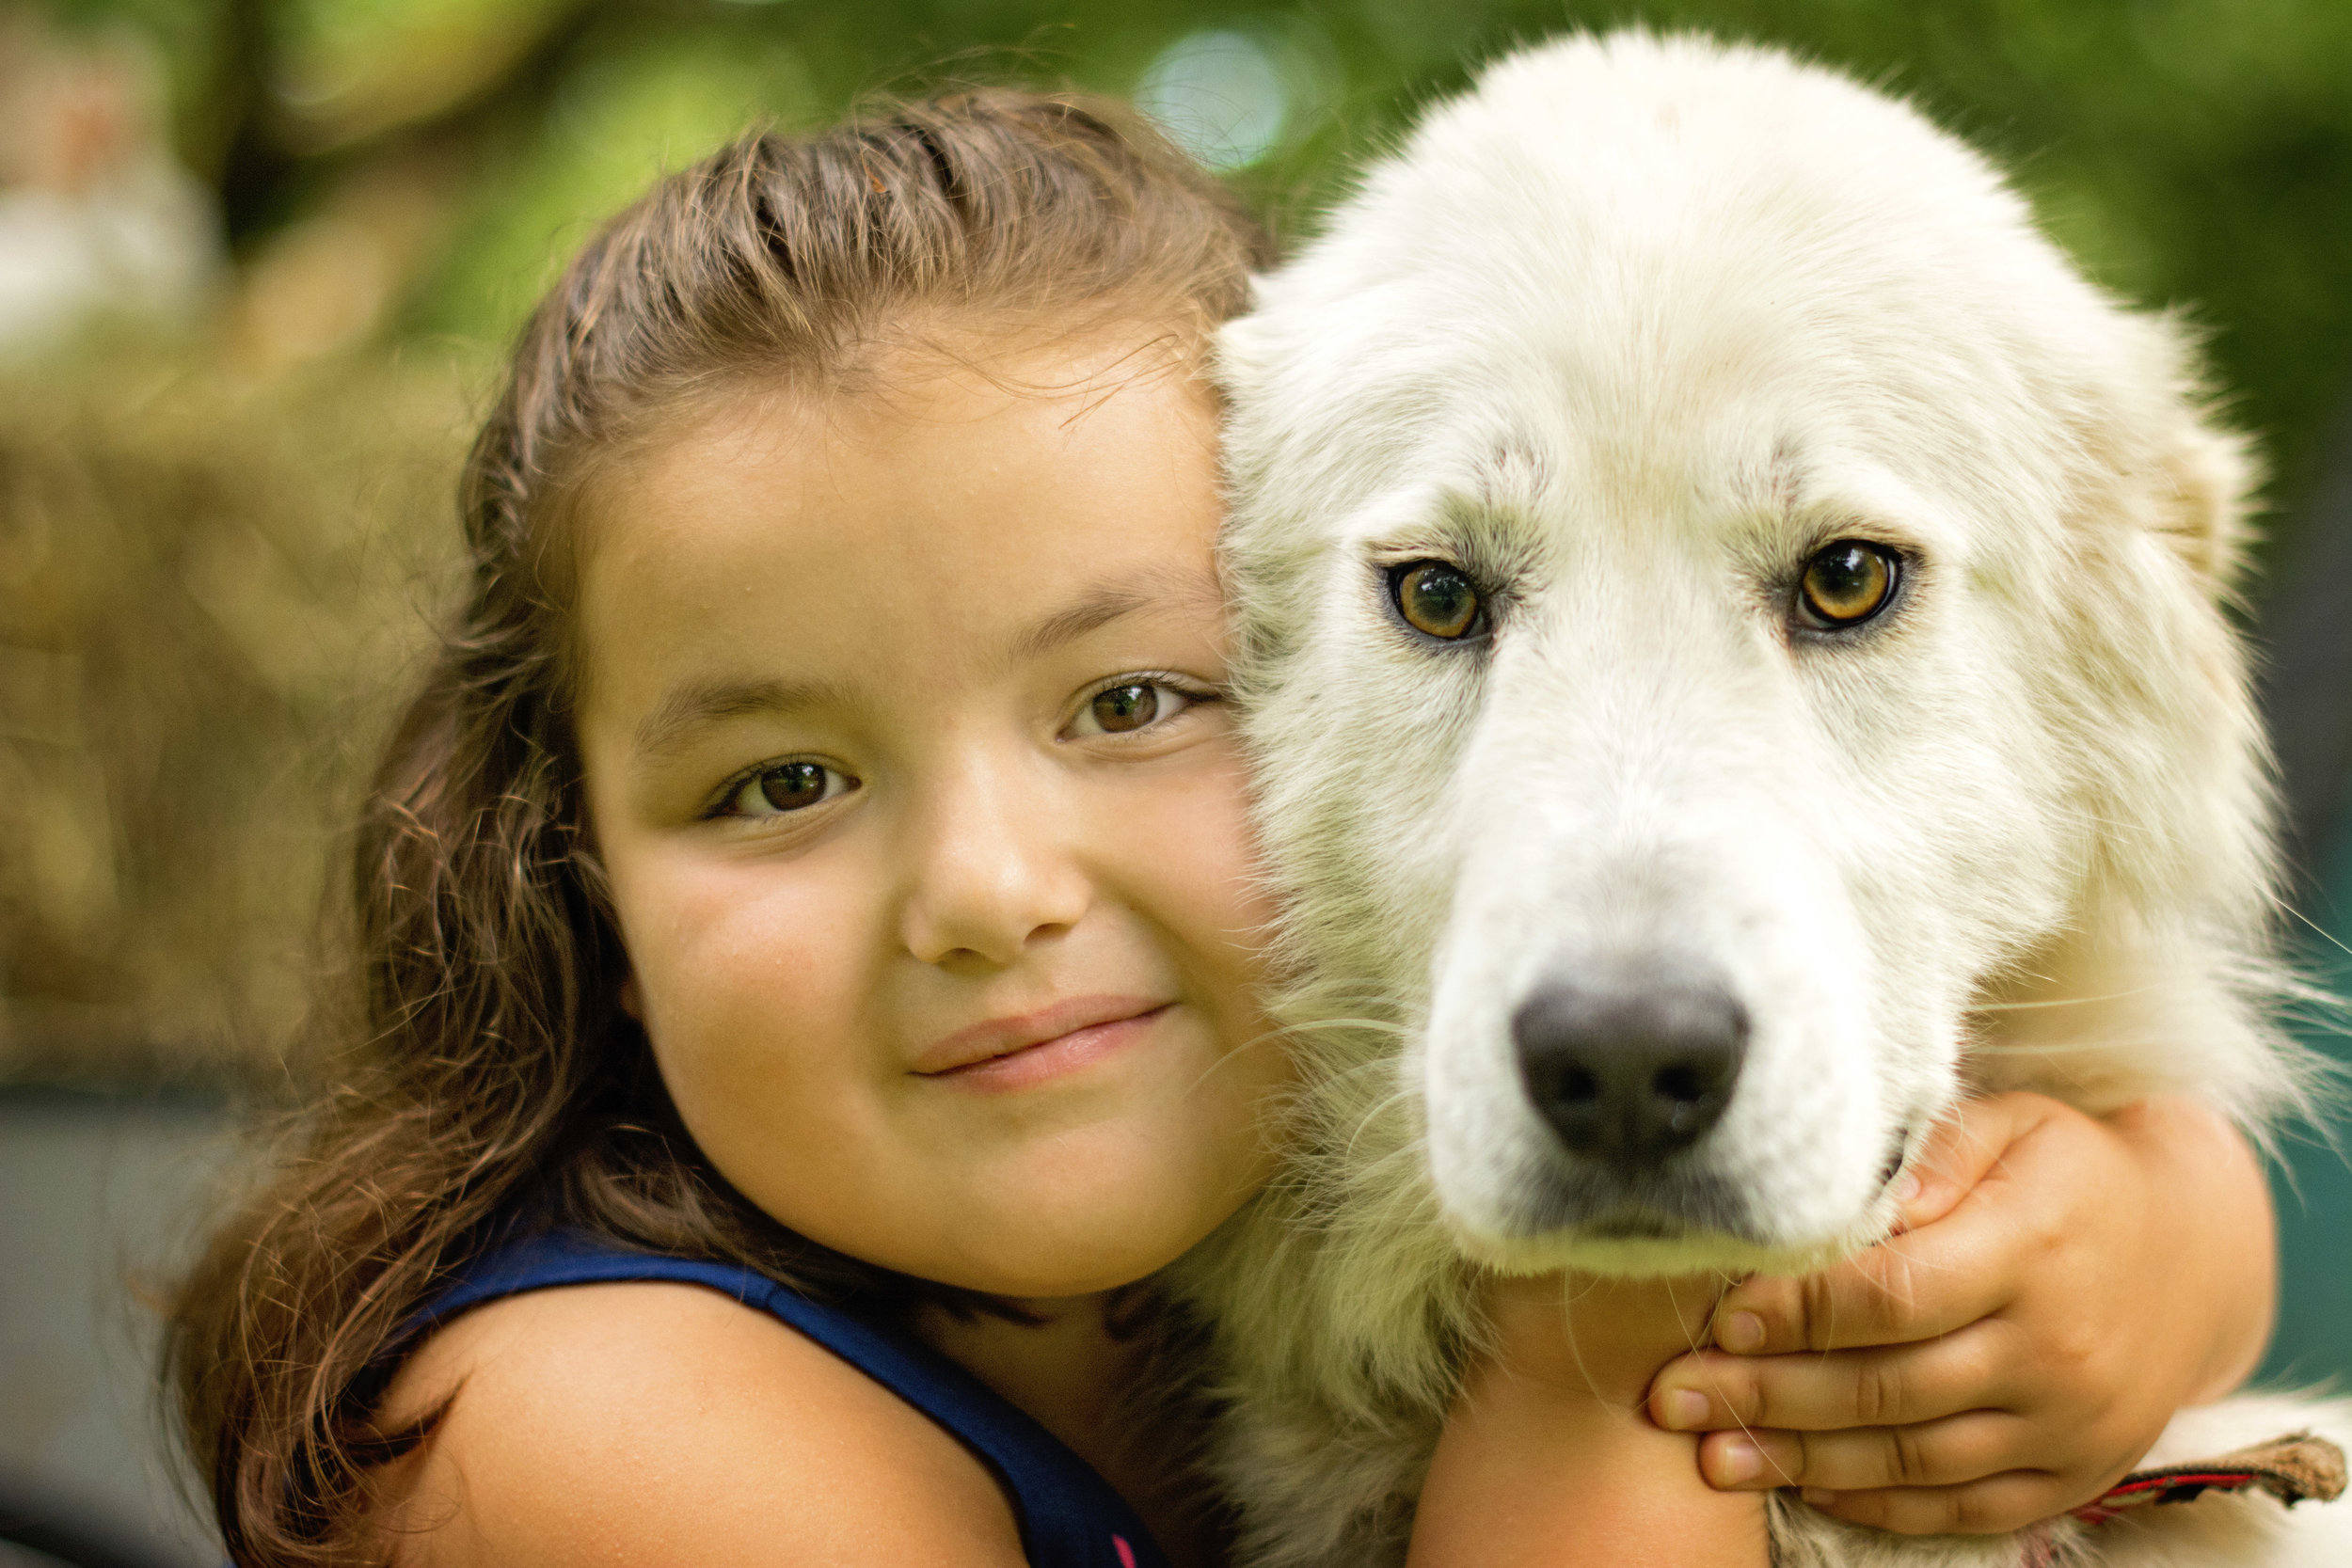 How sweet is that...just a girl and her pooch! Love it!